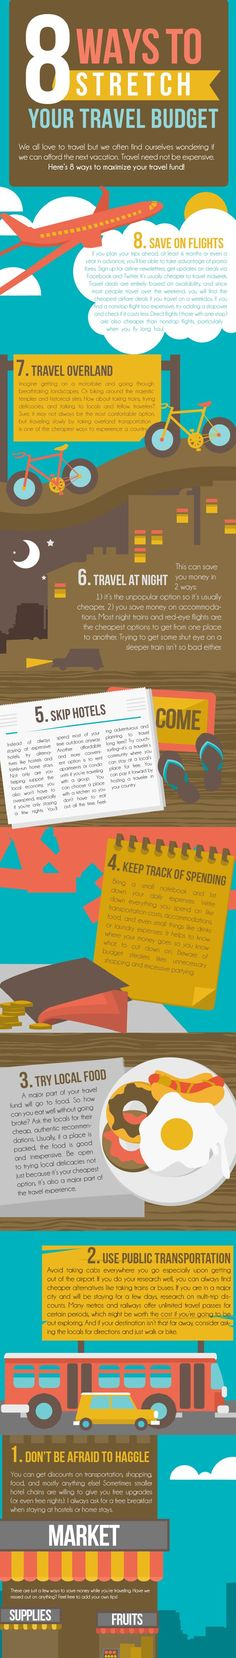 8 Ways To Stretch Your Travel Budget #infographic